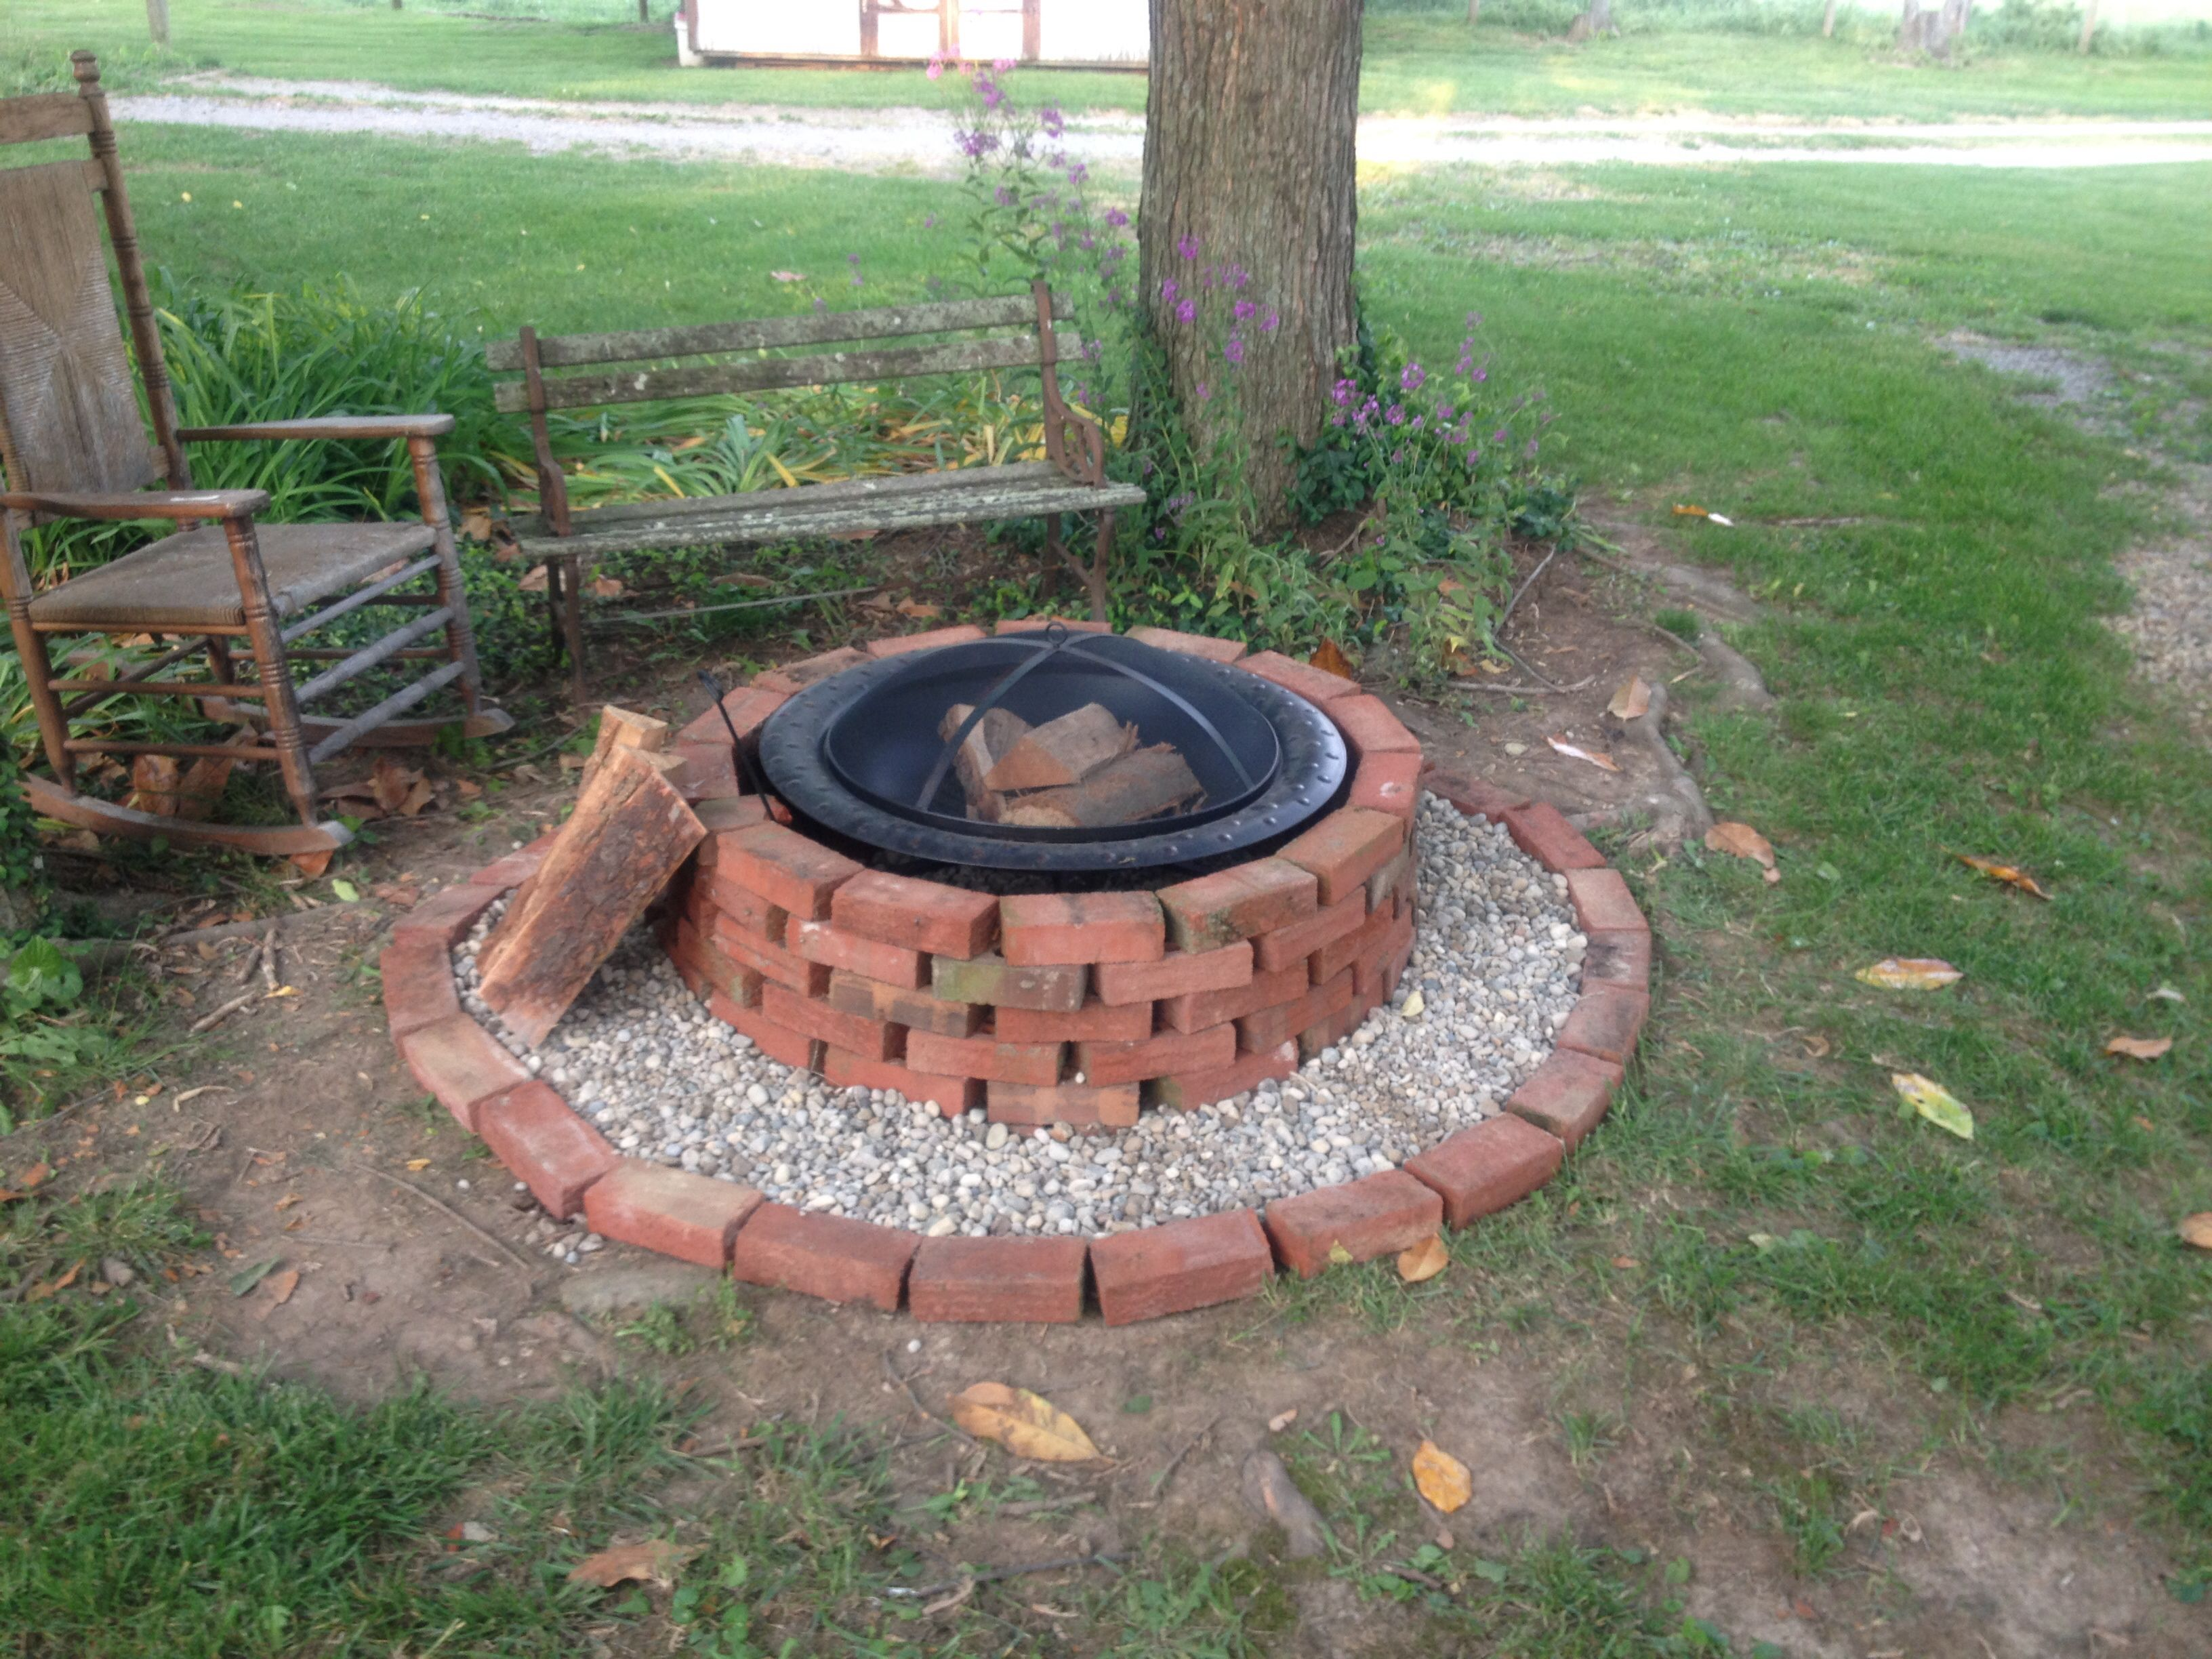 fire pits are beautiful when you fix them up i used